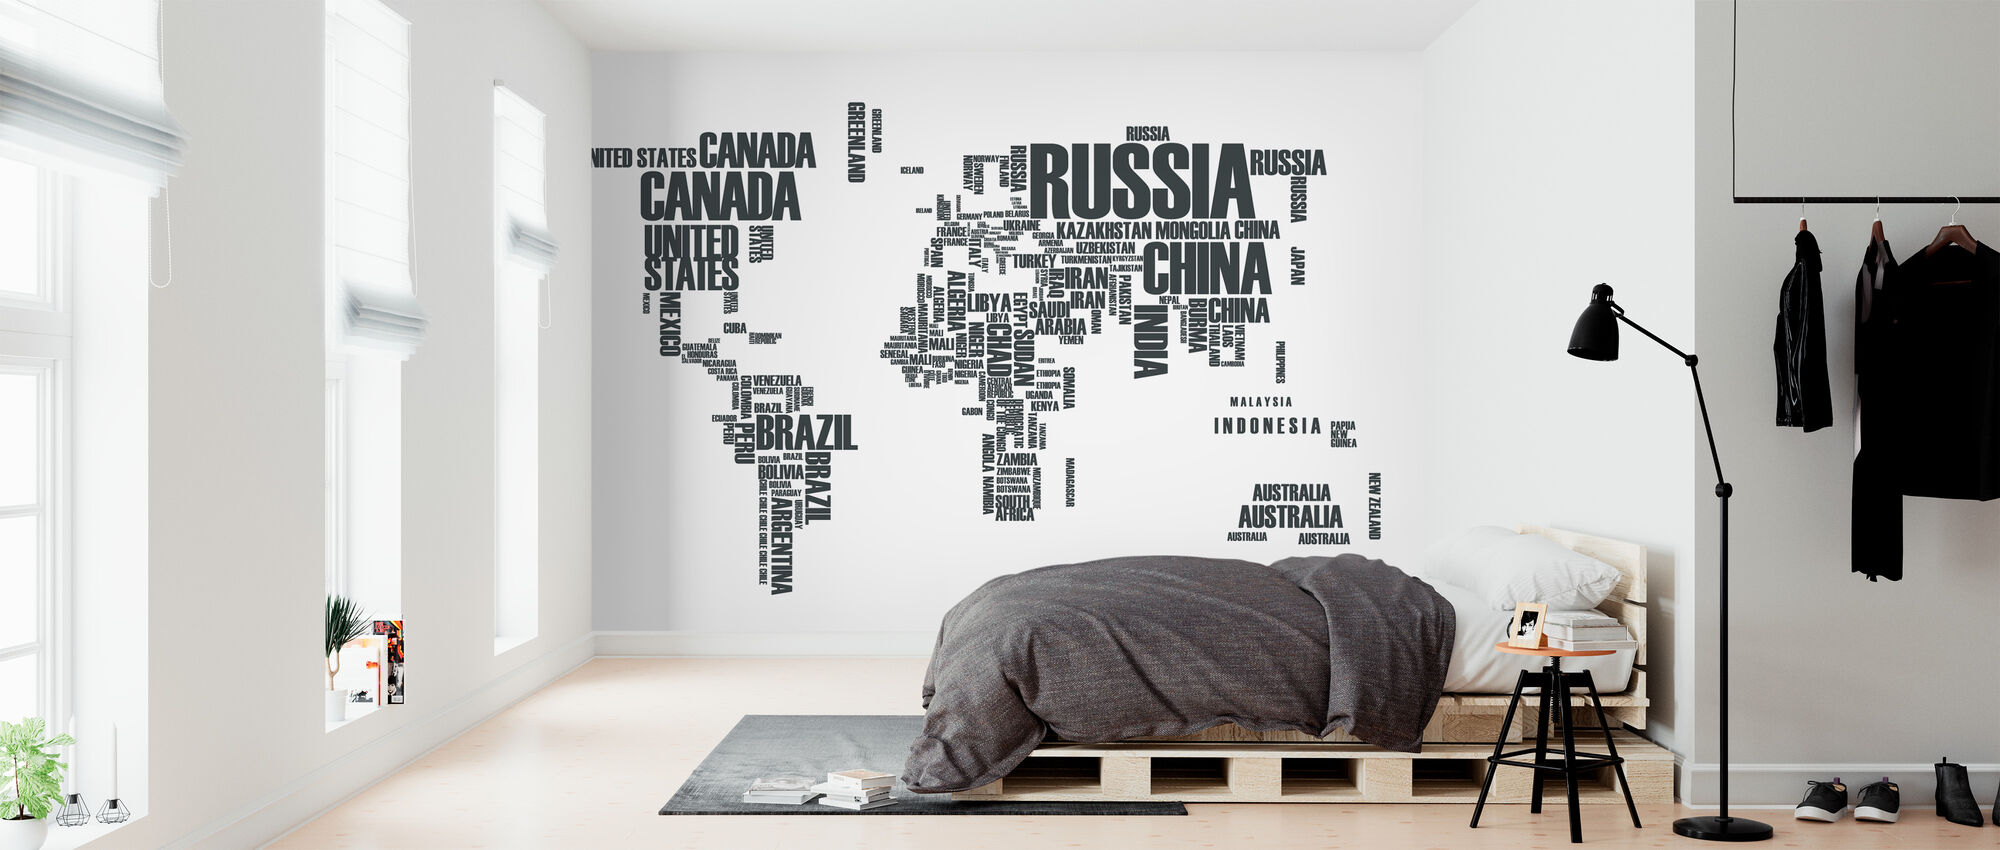 World in Wordcloud - Wallpaper - Bedroom